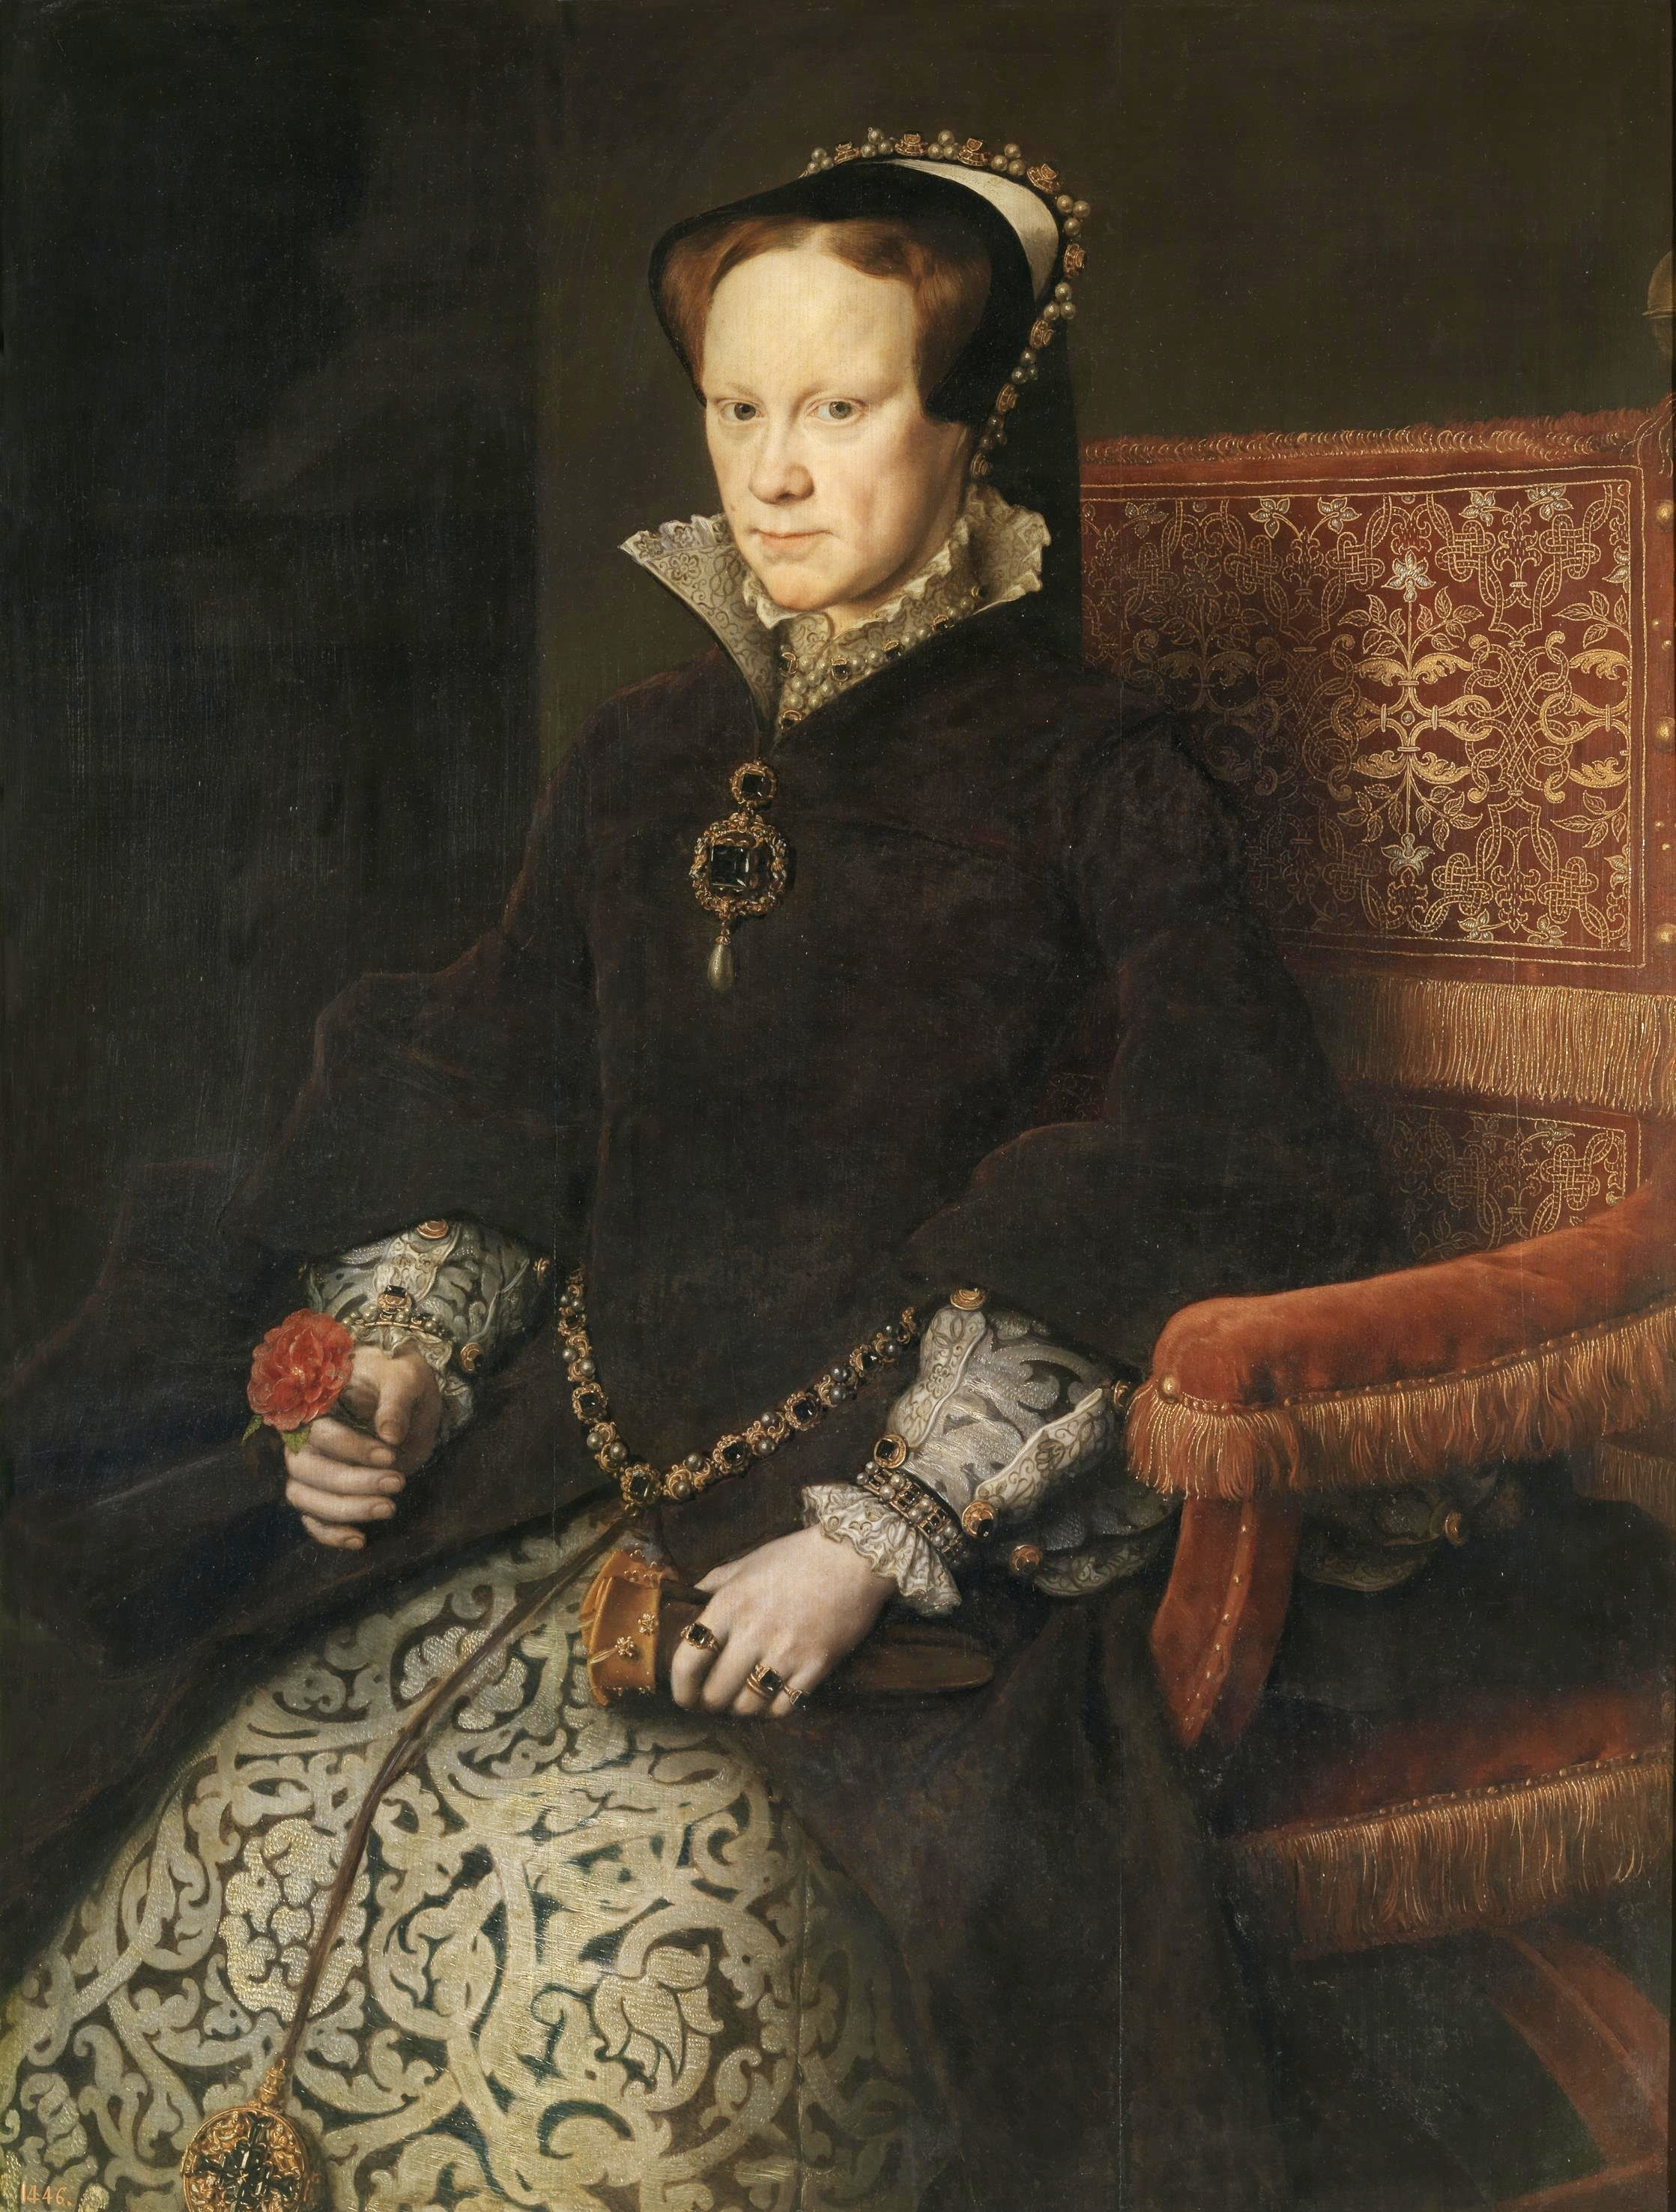 Mary I, by Anthonis Mor, 1554